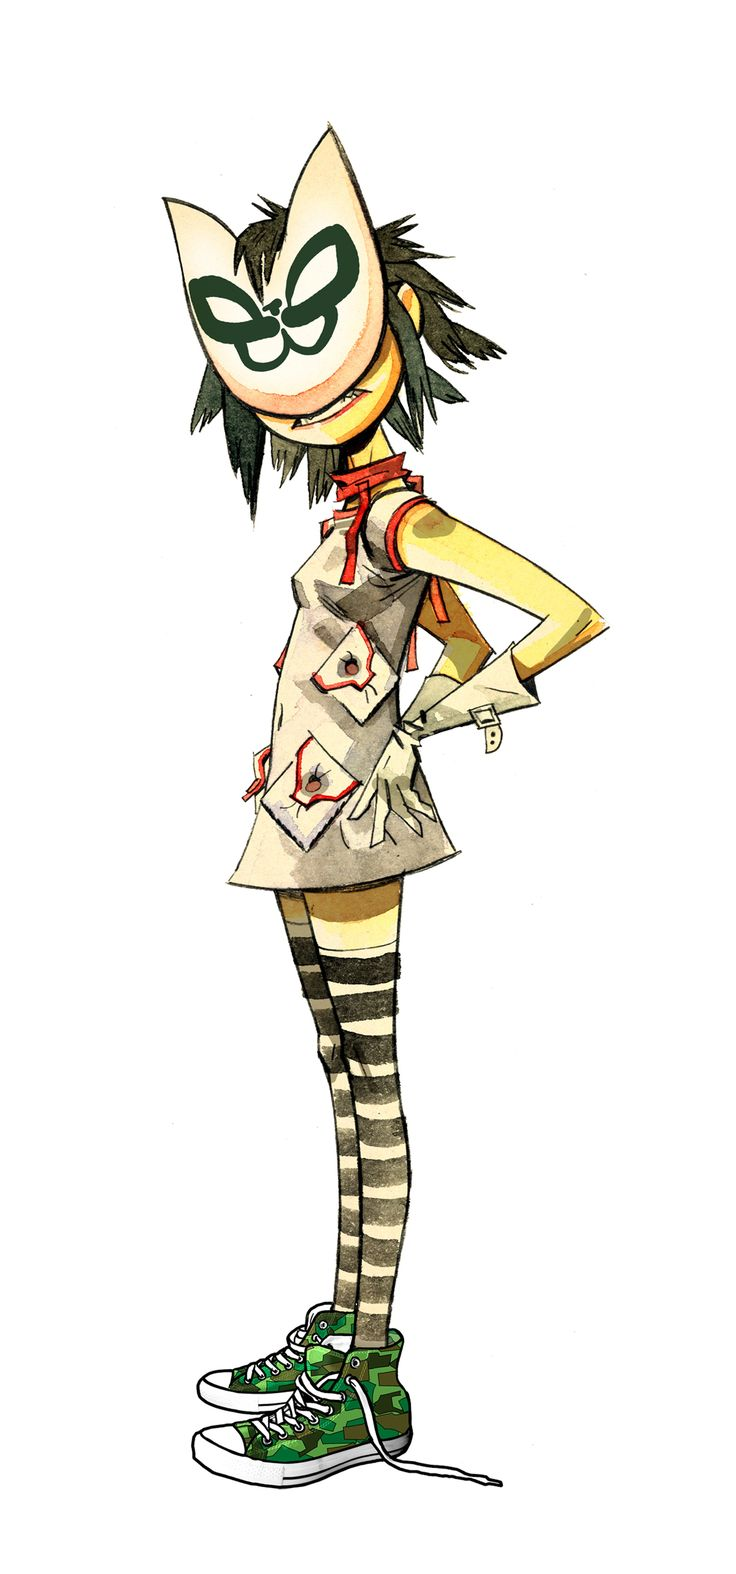 Noodle from The Gorillaz